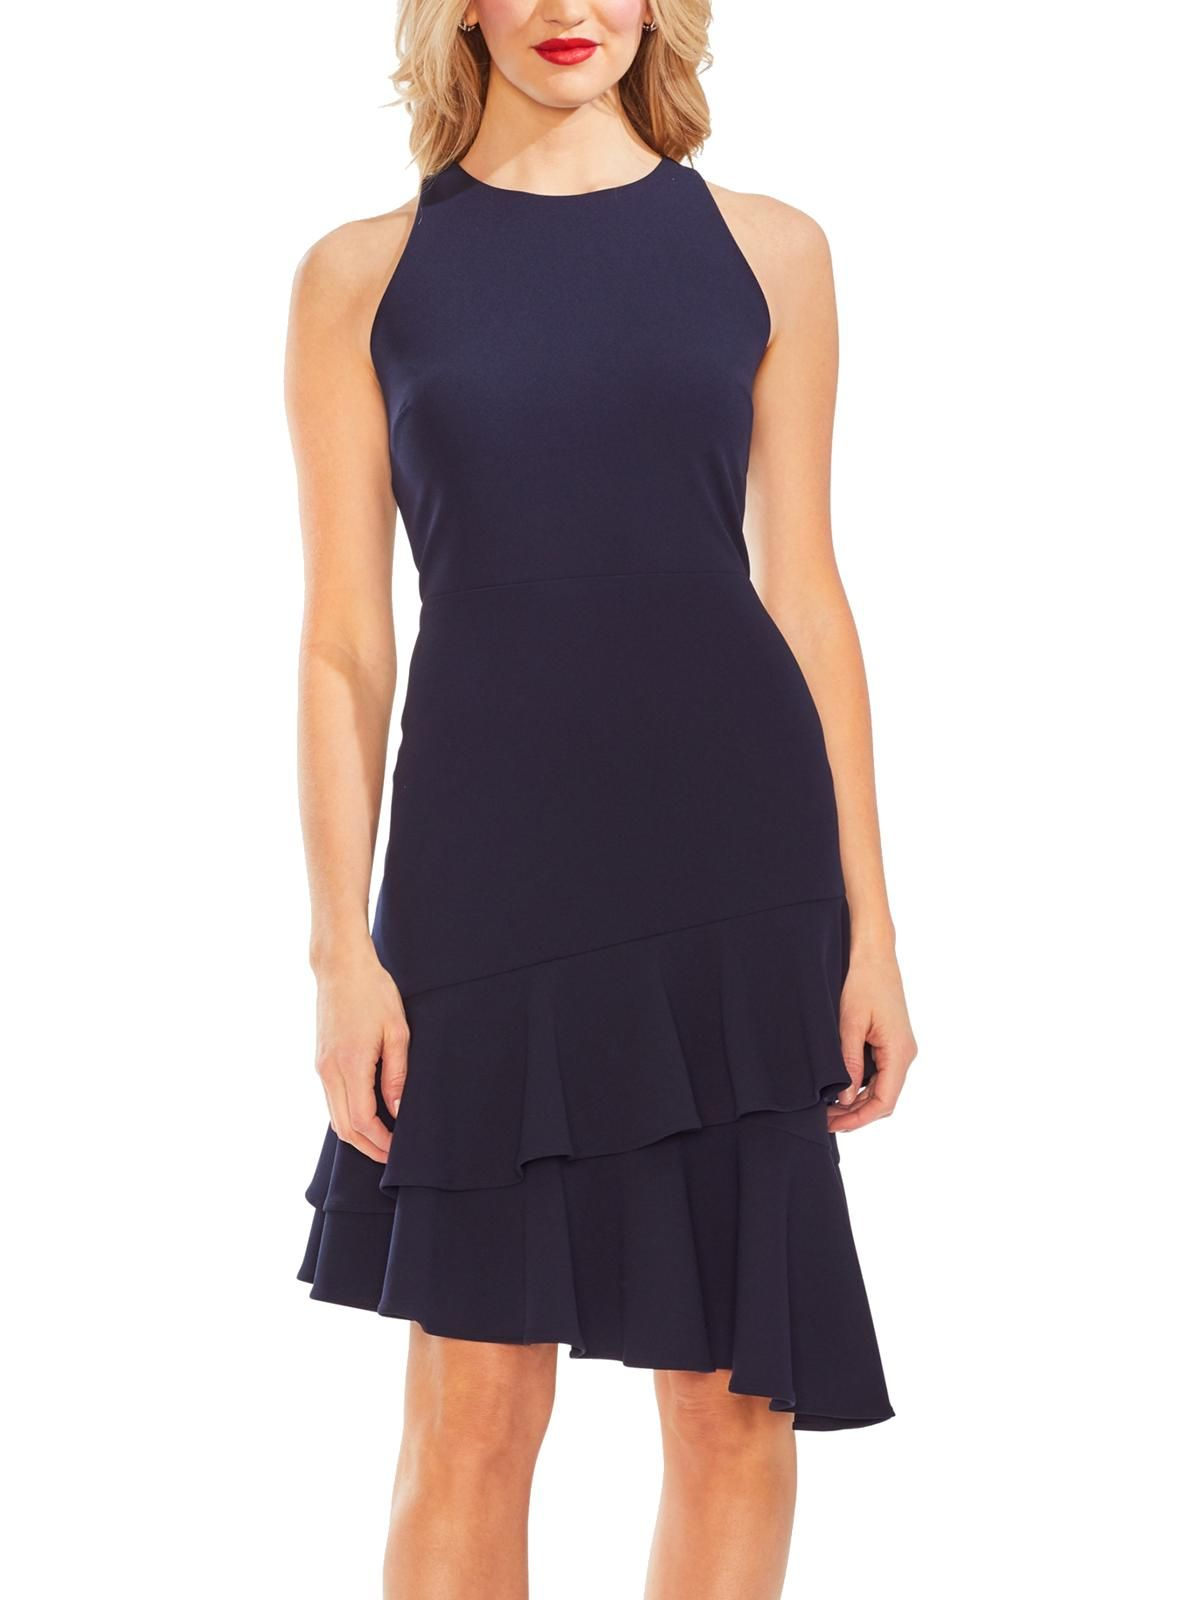 Free 2 Day Shipping Buy Vince Camuto Womens Tiered Ruffled Cocktail Dress At Walmart Com In 2021 Asymmetrical Hem Dress Hem Dress Navy Dress Outfits [ 1600 x 1200 Pixel ]